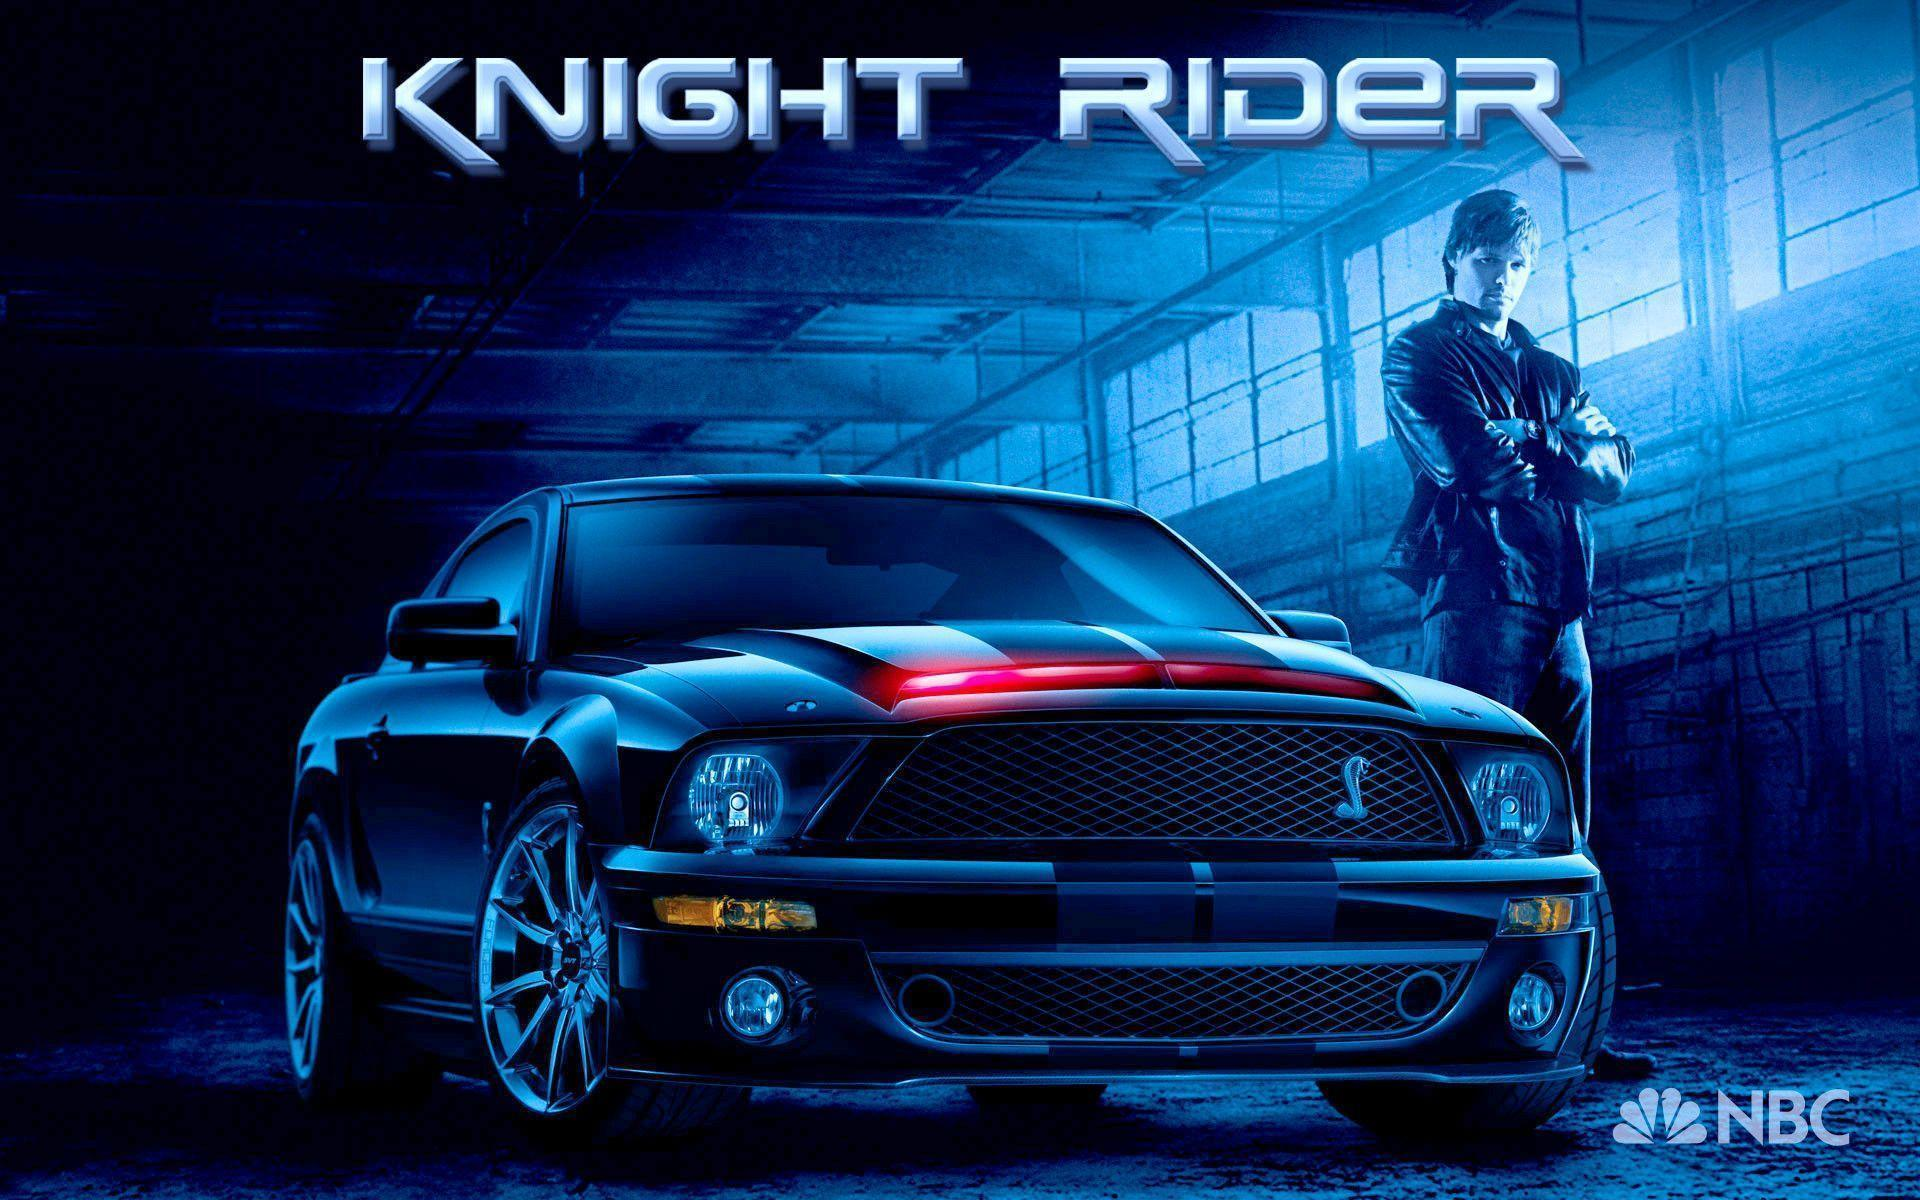 Gta San Andreas Wallpaper Hd Knight Rider Kitt Wallpapers Wallpaper Cave